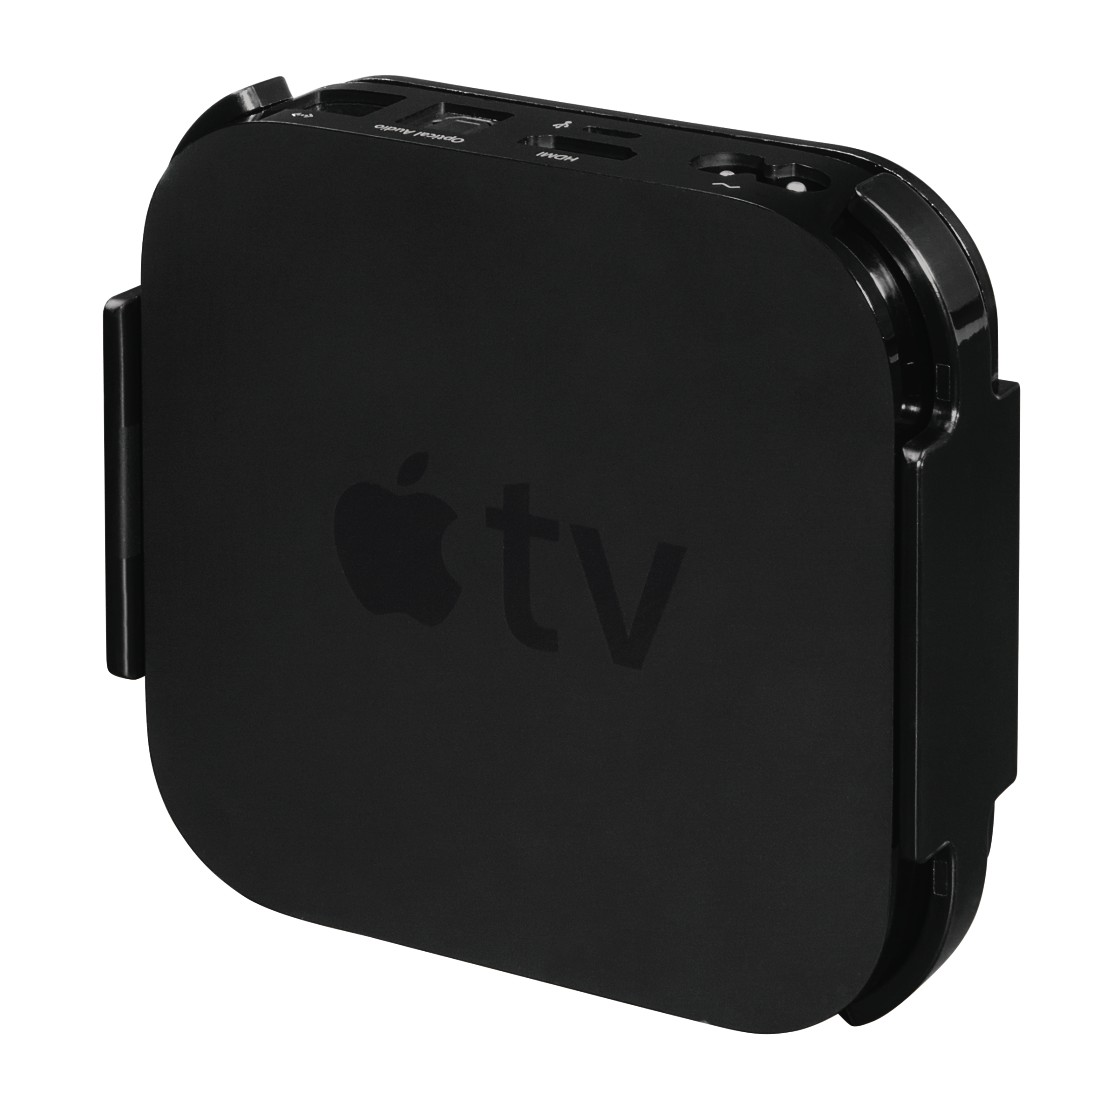 Suport Hama pentru Apple TV generatia a 4-a, Apple TV 4K